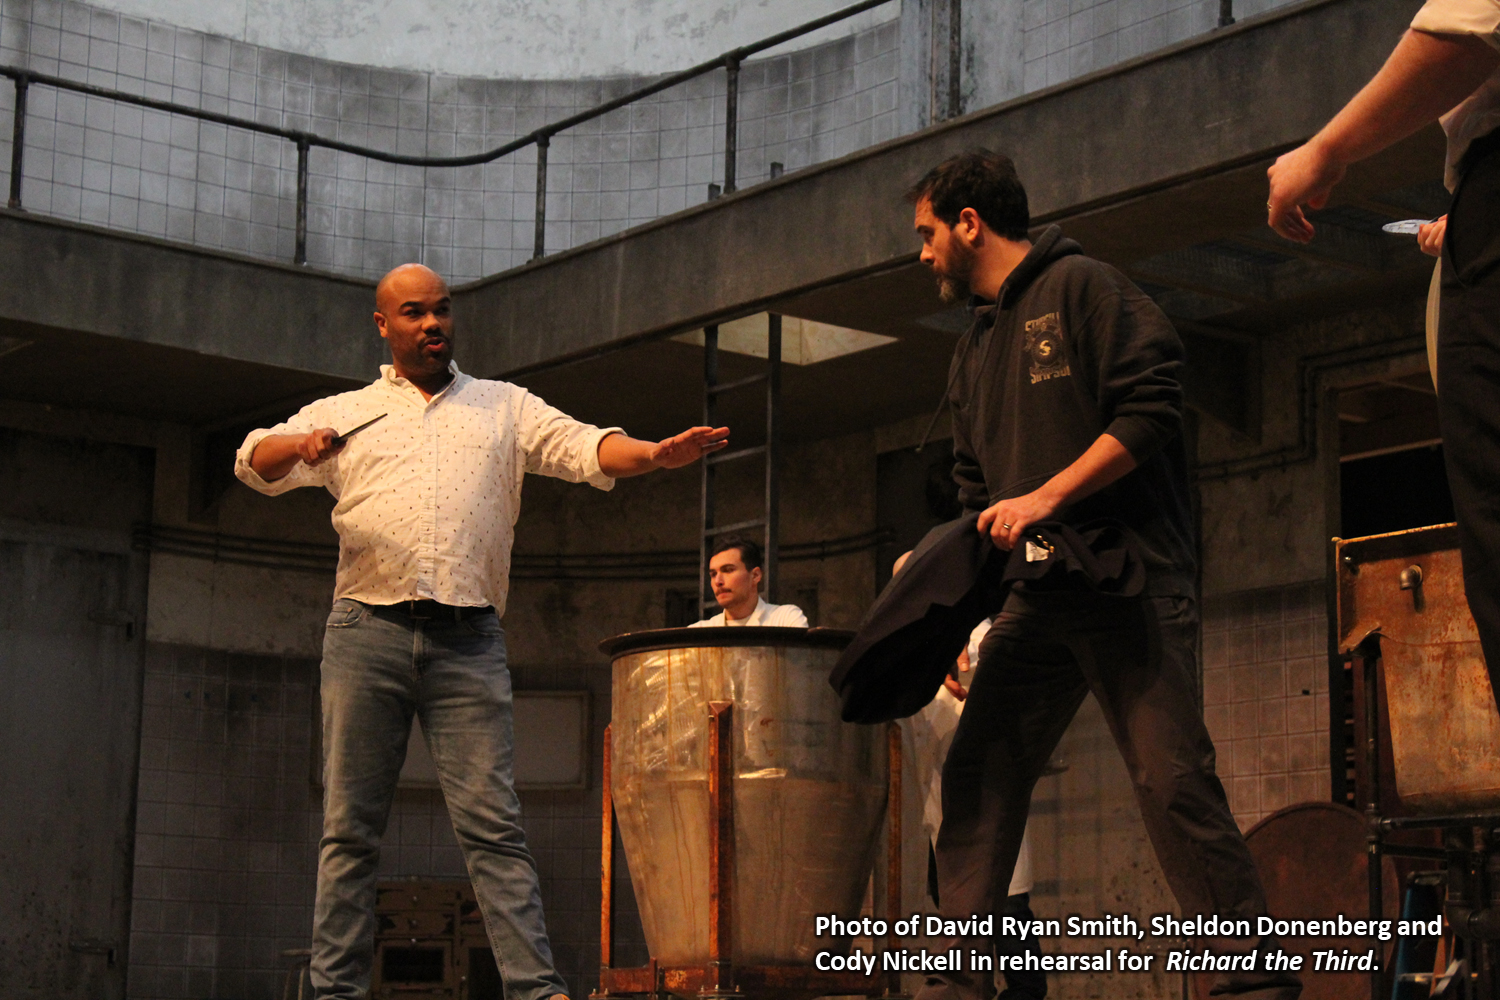 Photo of David Ryan Smith, Sheldon Donenberg and Cody Nickell in rehearsal for Richard the Third in rehearsal.